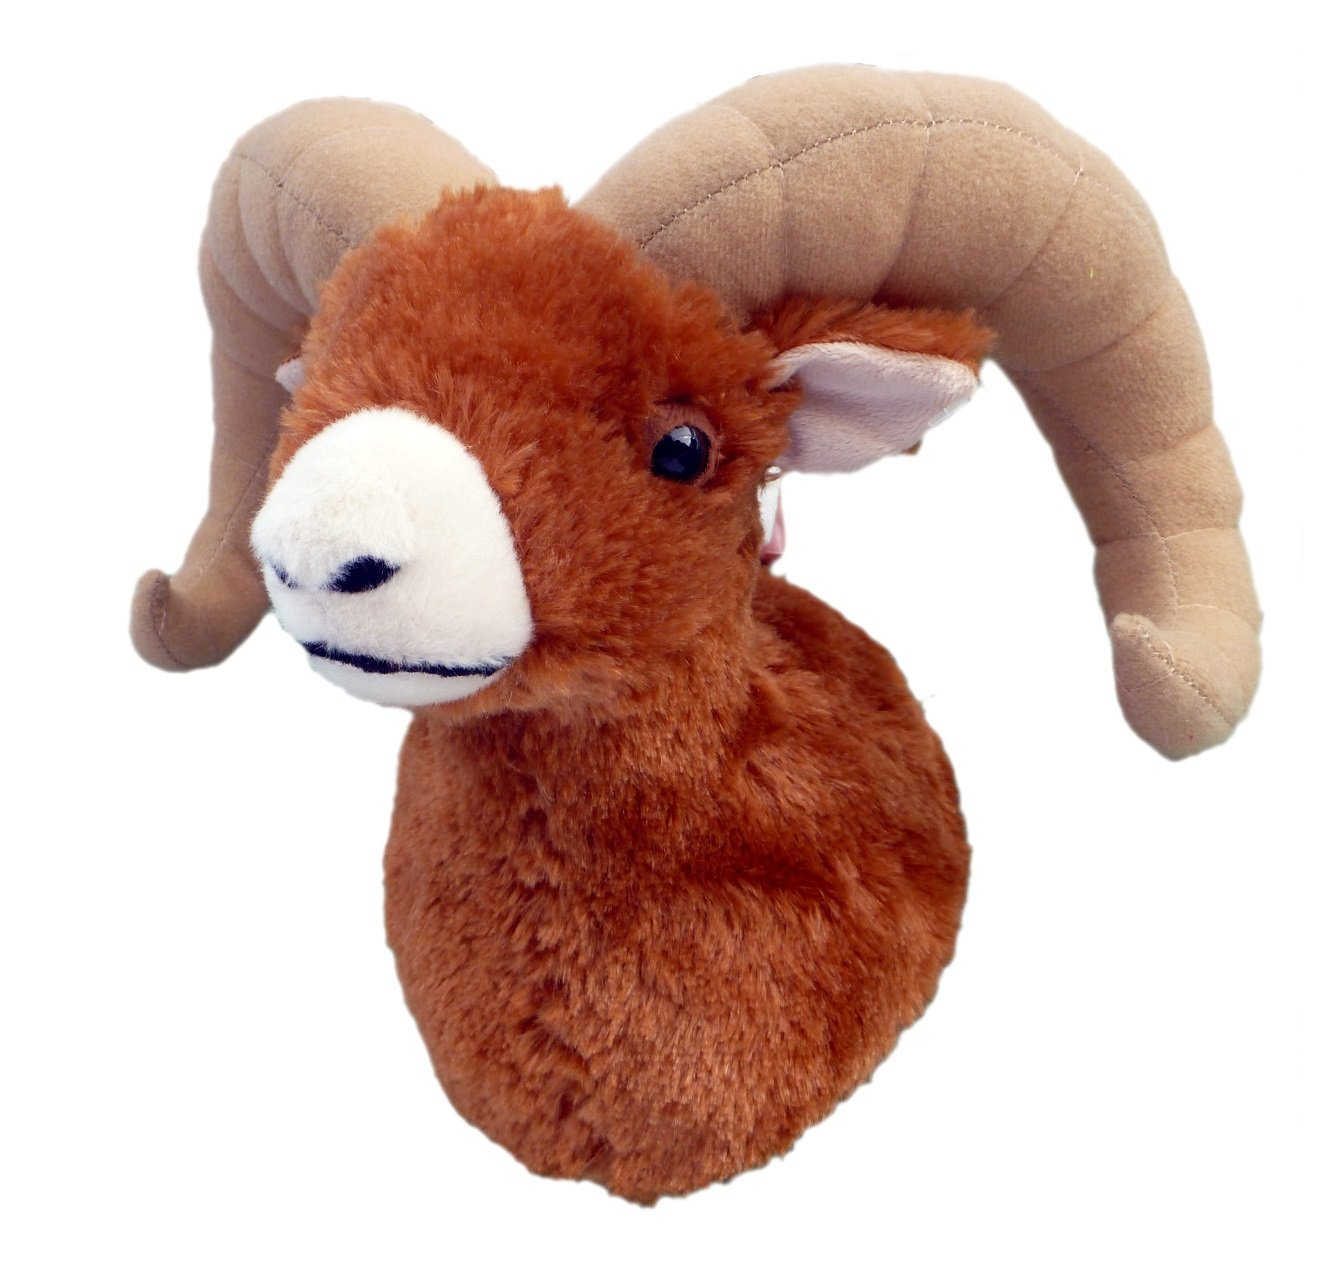 Cheap Sheep Mount Find Sheep Mount Deals On Line At Alibaba Com